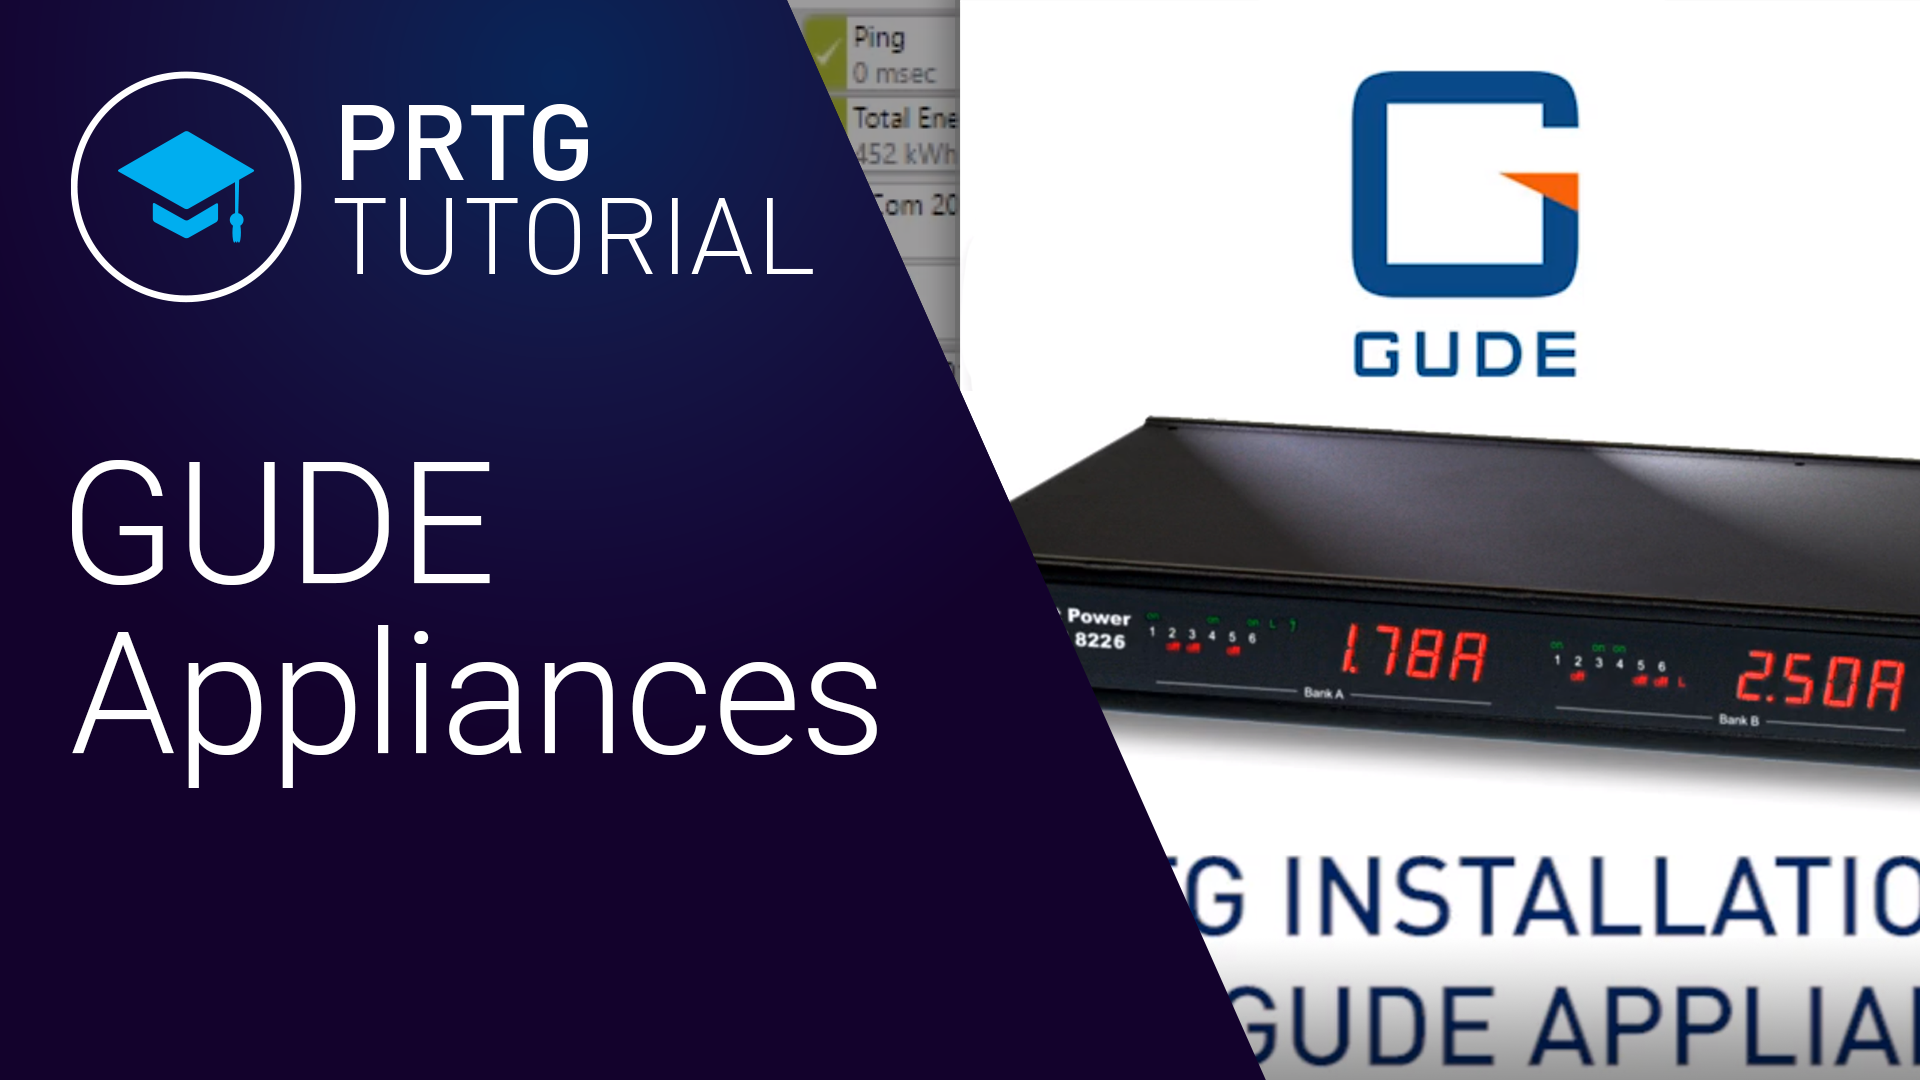 Video: PRTG Installation for GUDE Appliances (Videos, Setup)